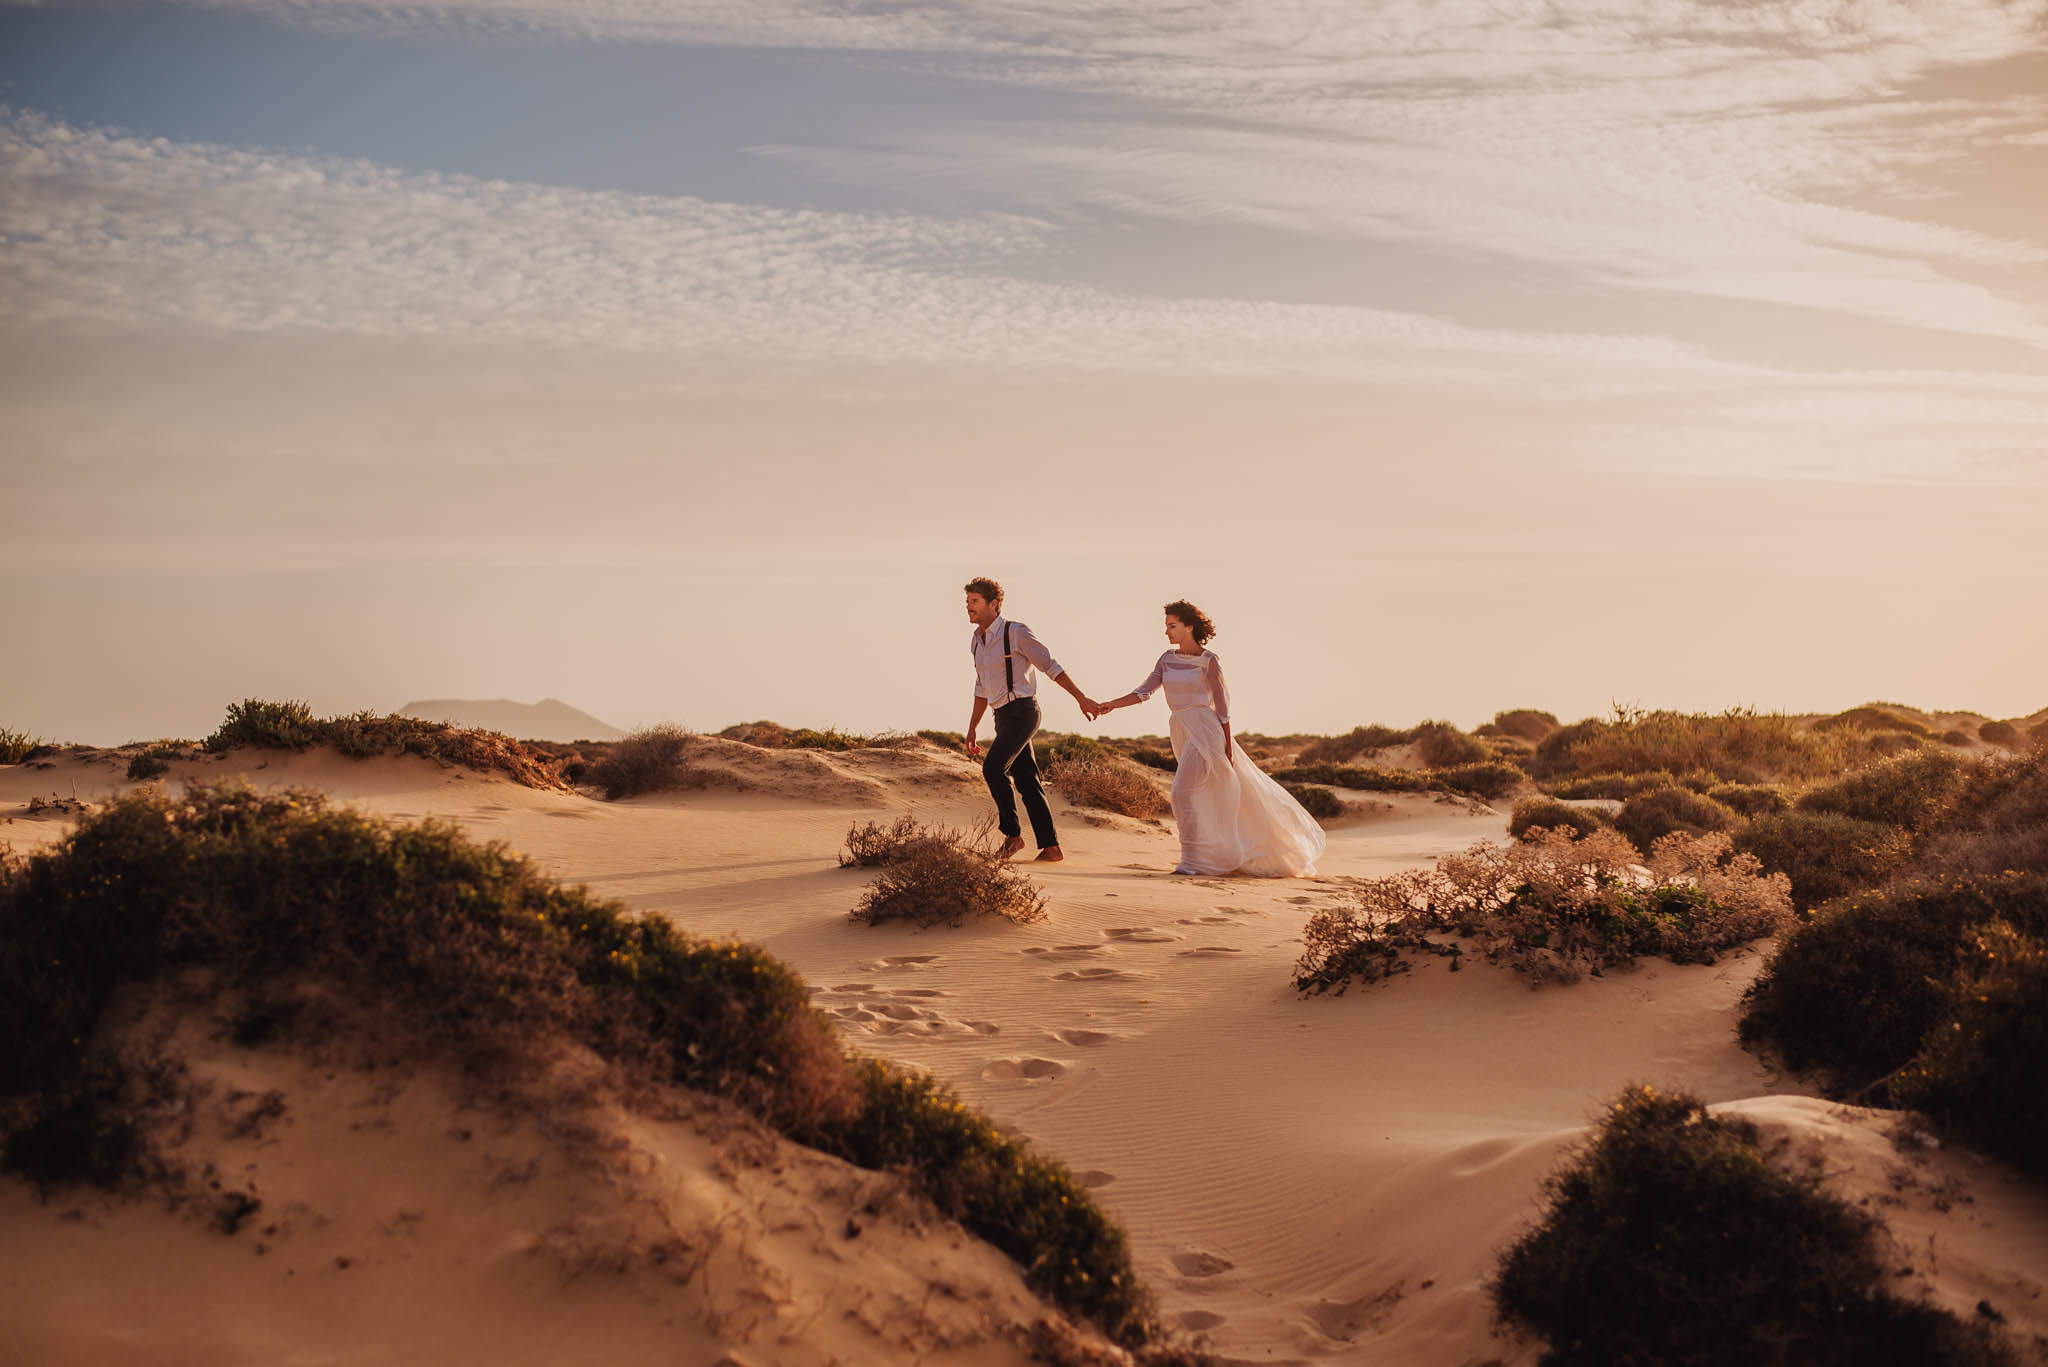 Wedding photography elopement at the beach